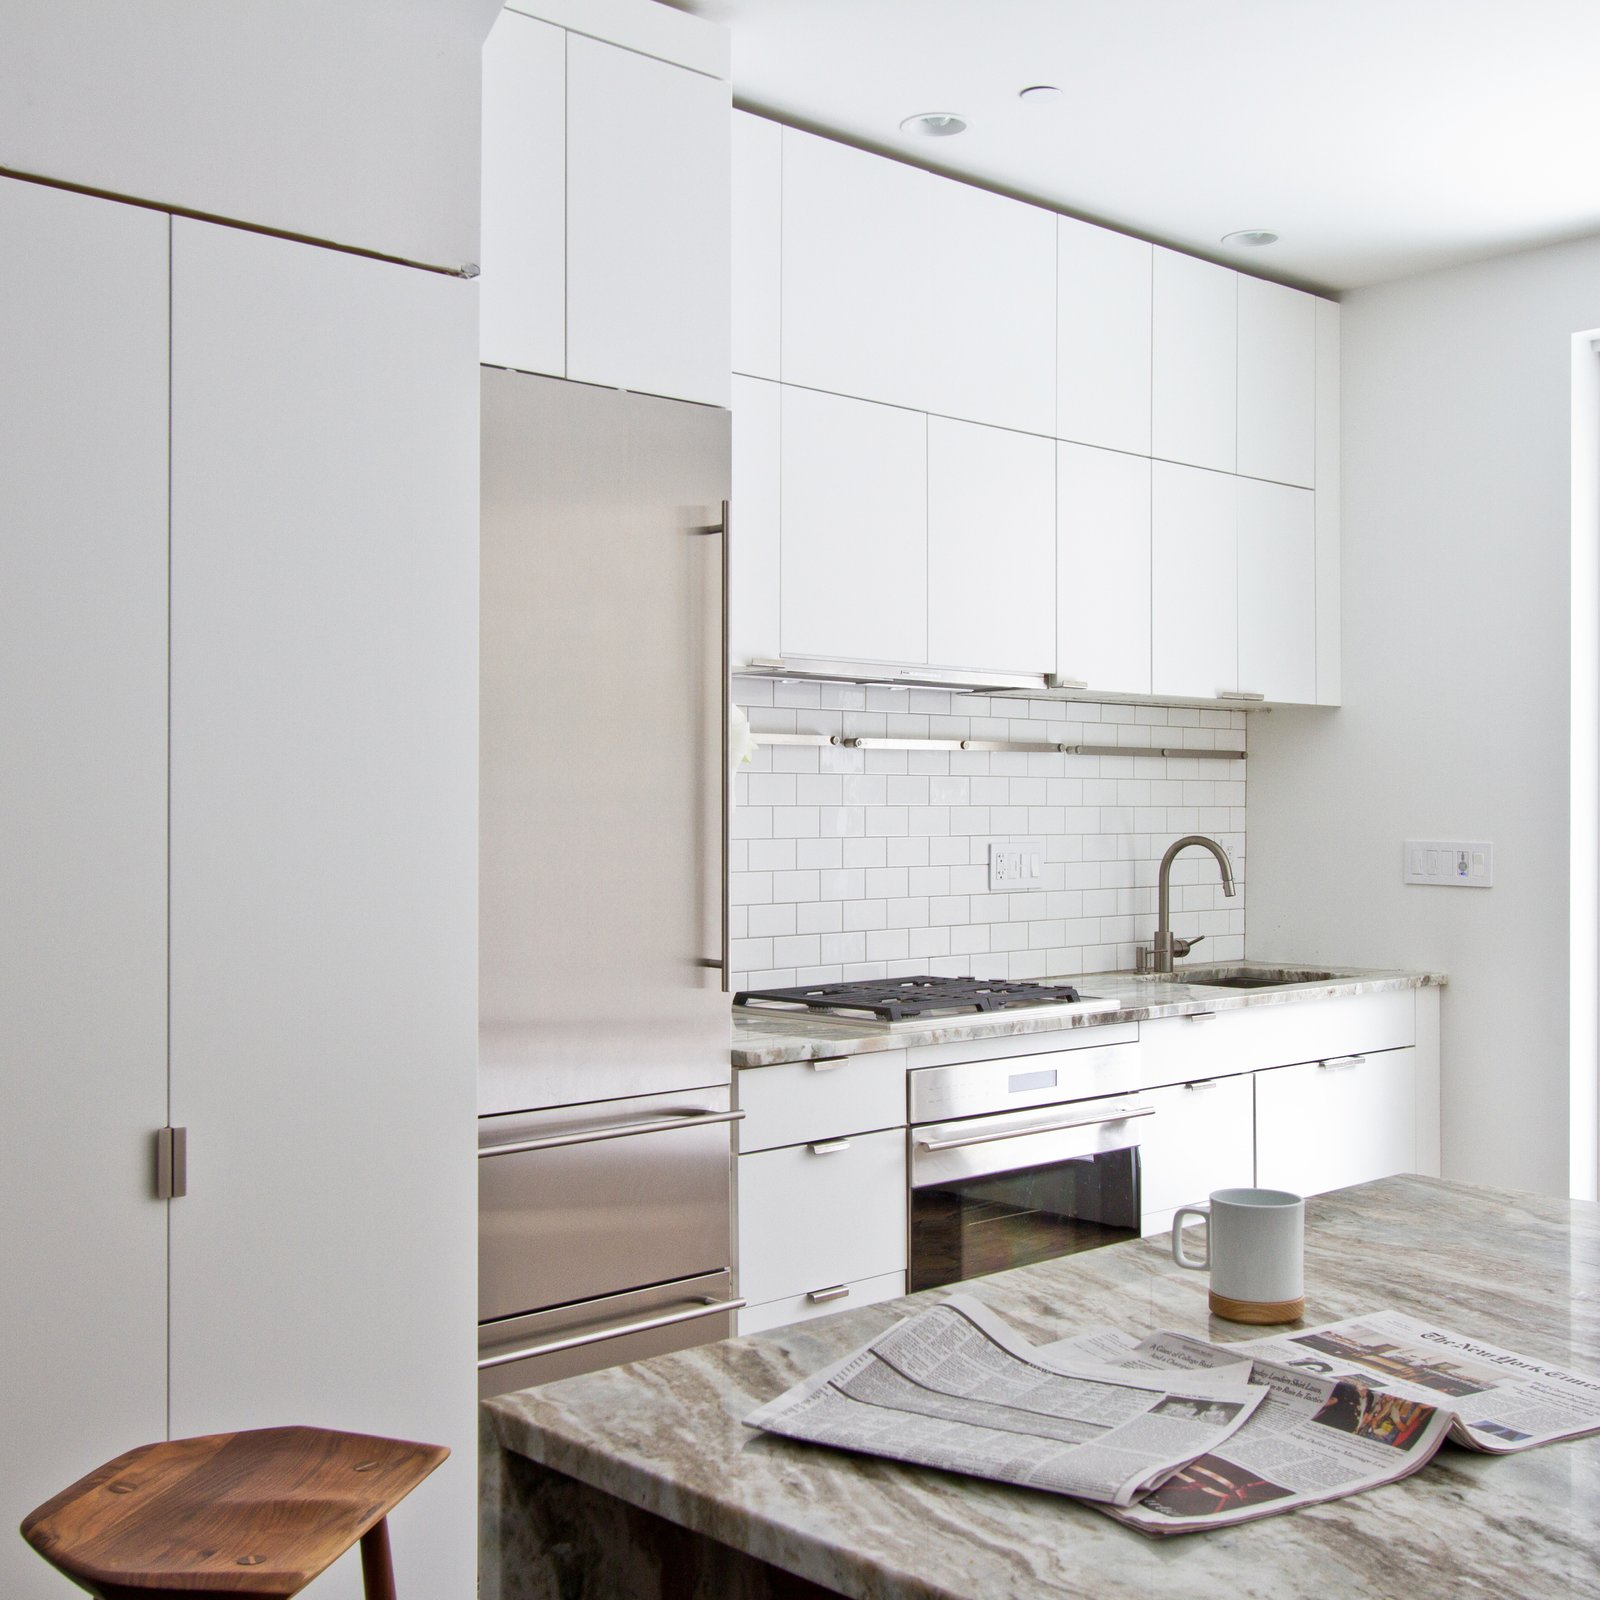 The white interior, in addition to presenting the home as a potential blank canvas, helps reflect ample natural light.  Revitalization by Caroline Wallis